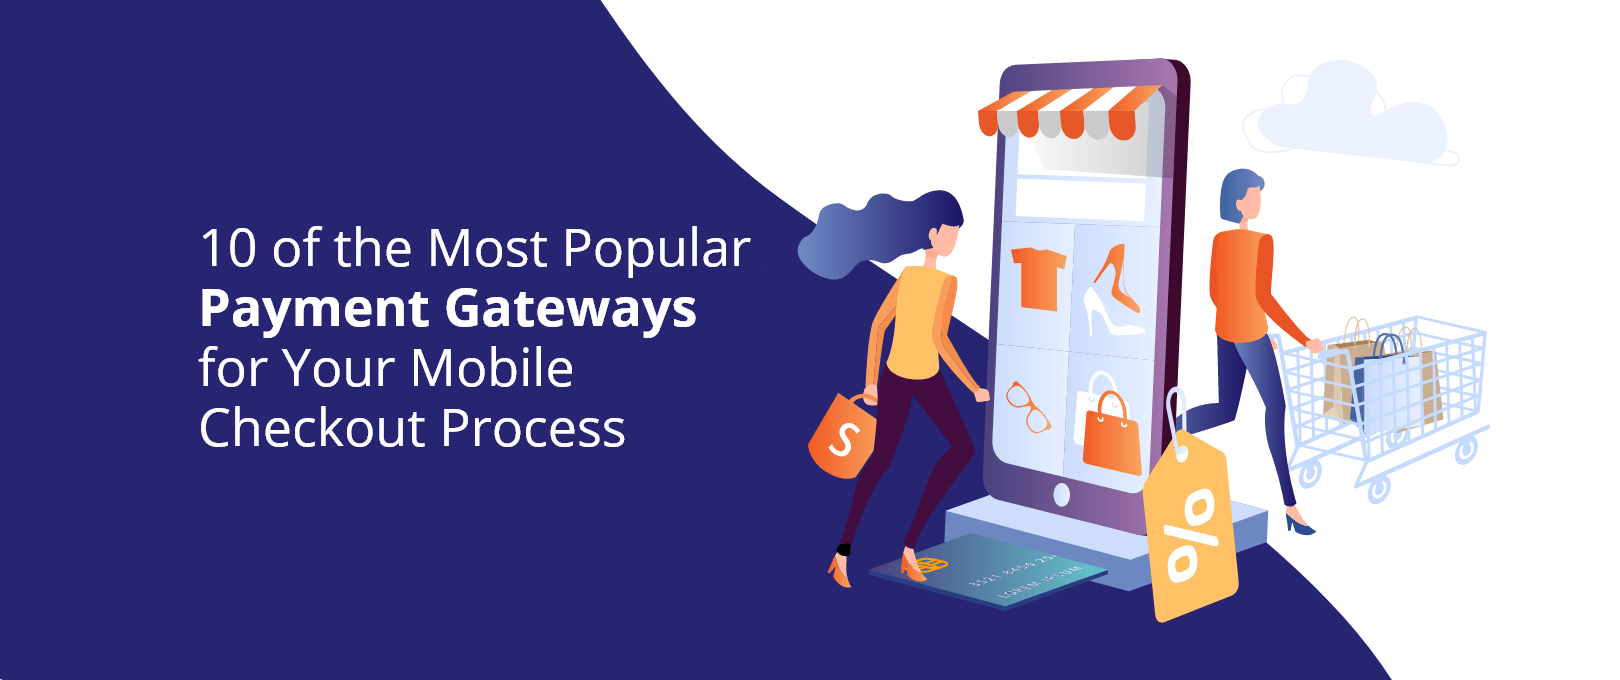 10 of the Most Popular Payment Gateways for Your Mobile Checkout Process